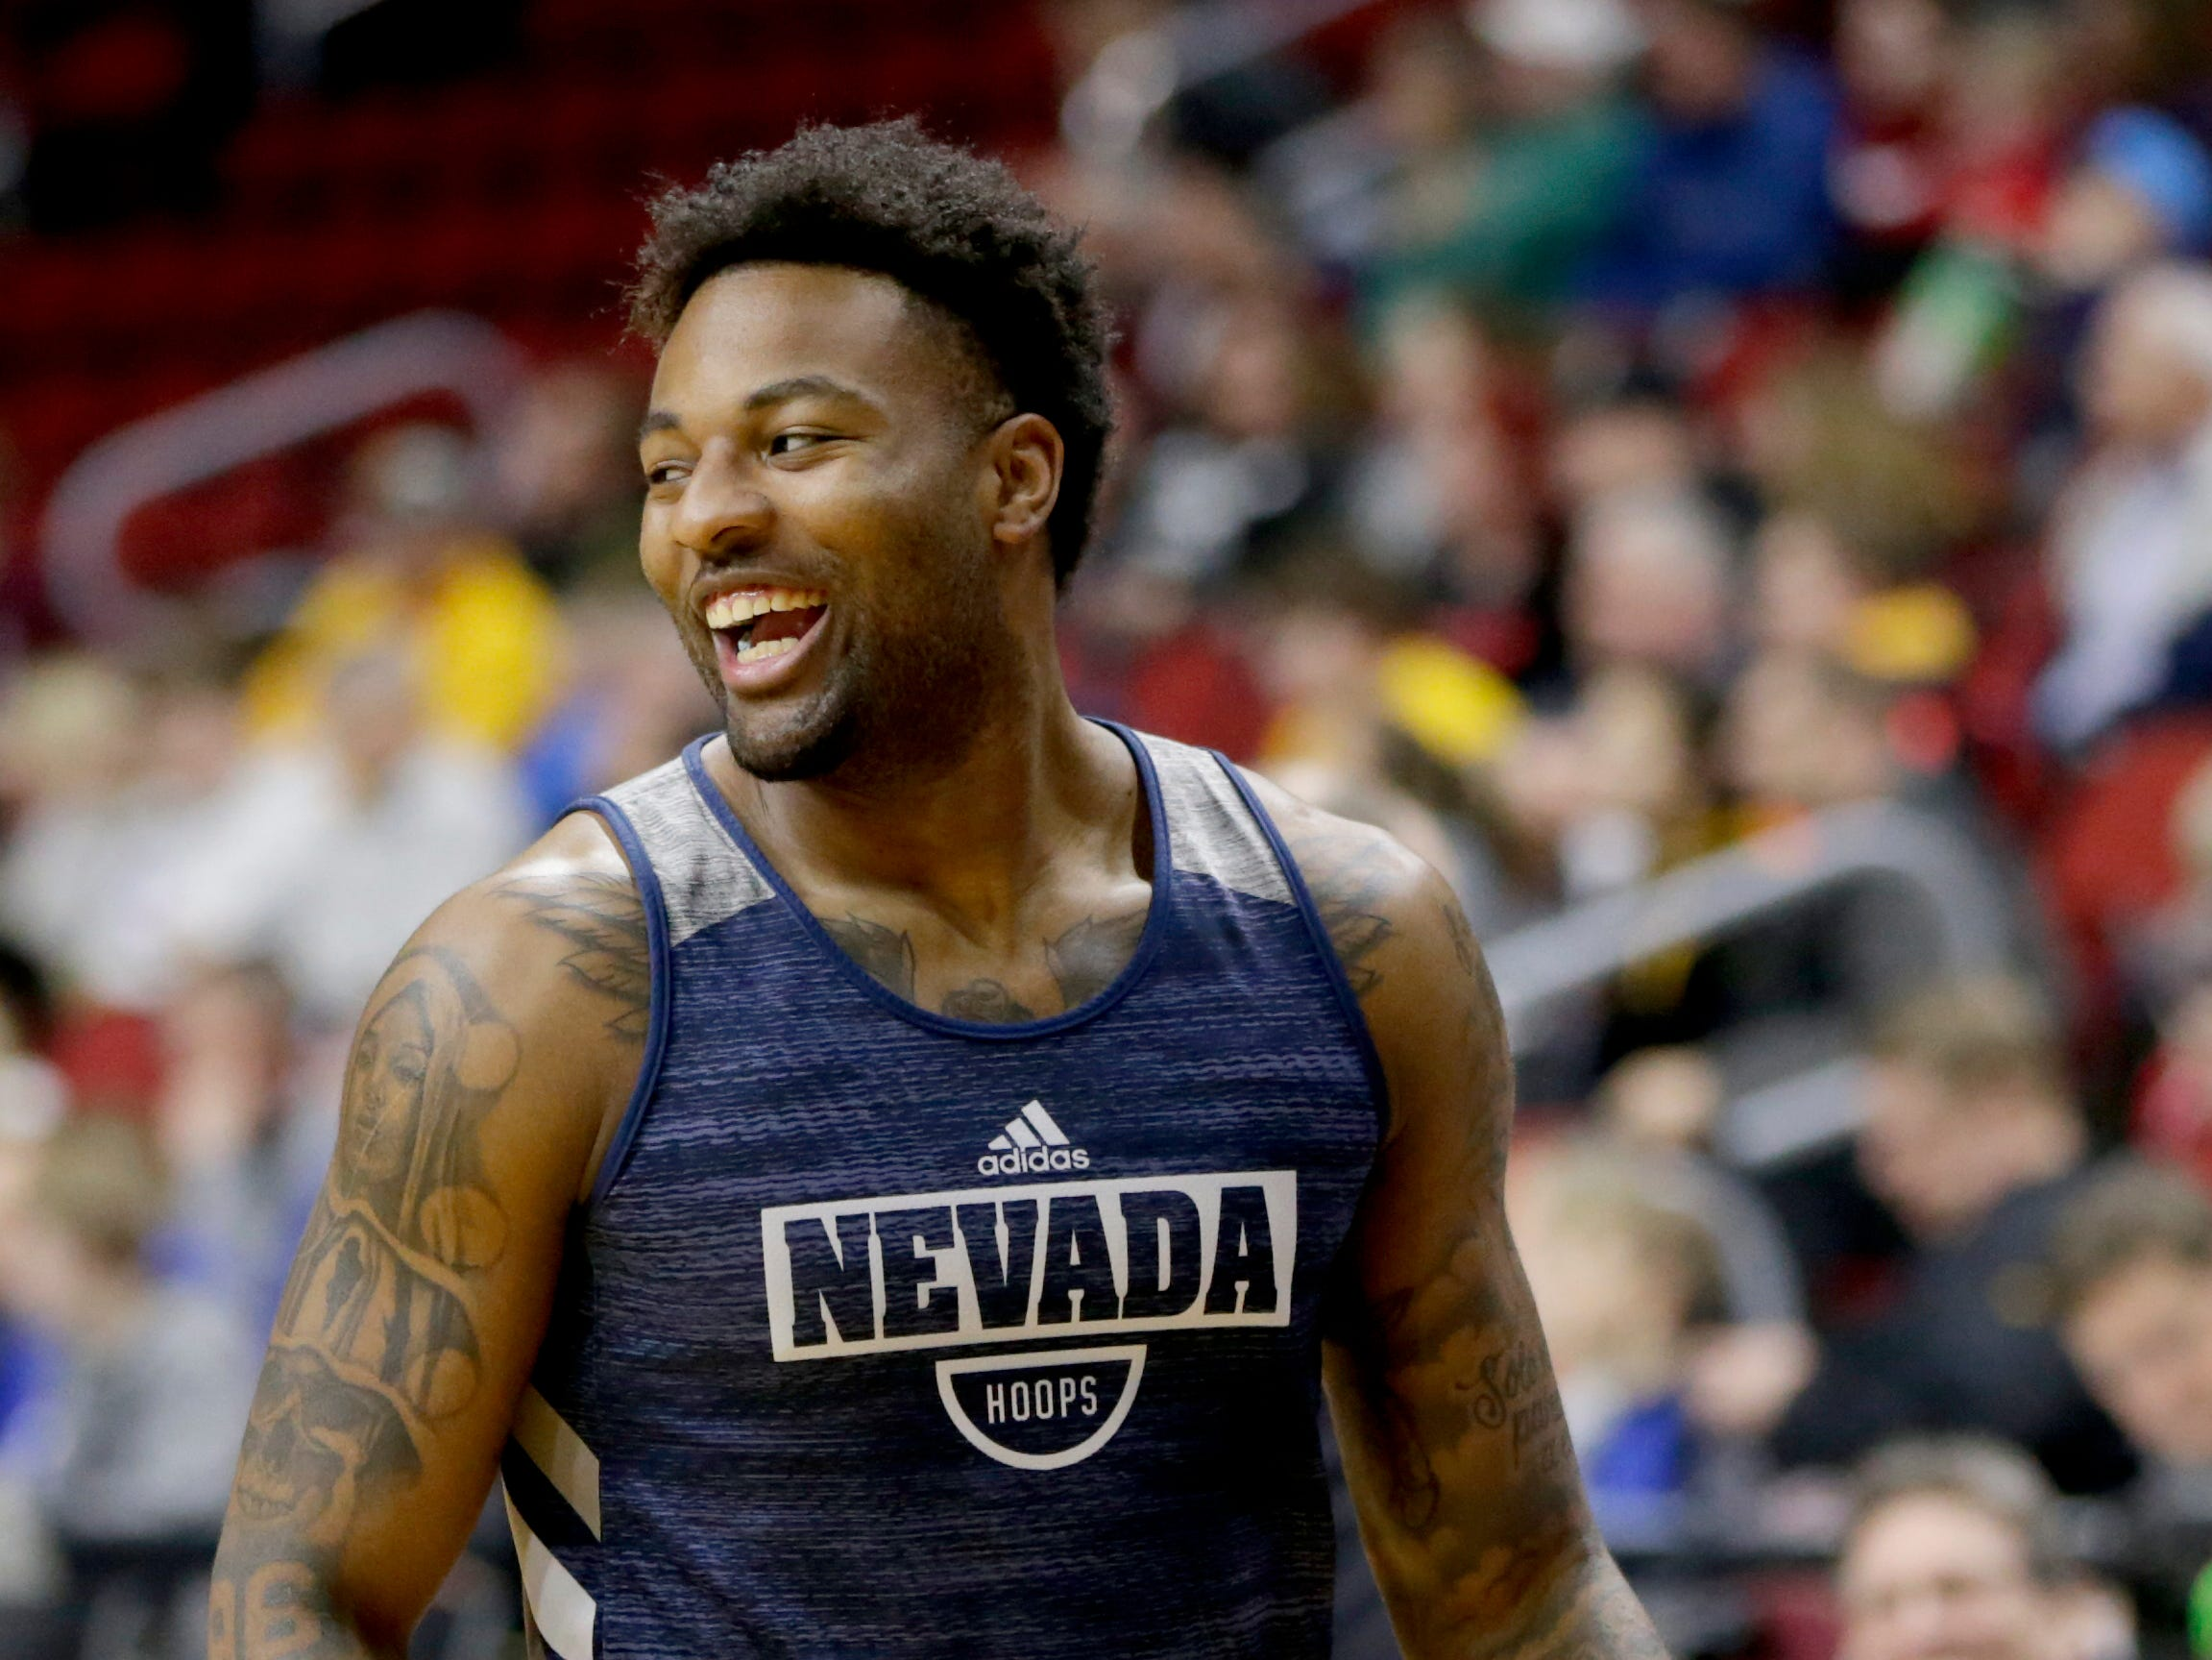 Nevada's Jordan Caroline smiles during team practice ahead of a first round men's college basketball game against Florida in the NCAA Tournament in Des Moines, Iowa, Wednesday, March 20, 2019. At 6-foot-7 and 235 pounds, Jordan Caroline has a football player's build just like dad. The son of former NFL defensive end Simeon Rice, and grandson of ex-Chicago Bear J.C. Caroline is making a name for himself as Nevada's top scorer and rebounder. (AP Photo/Nati Harnik)